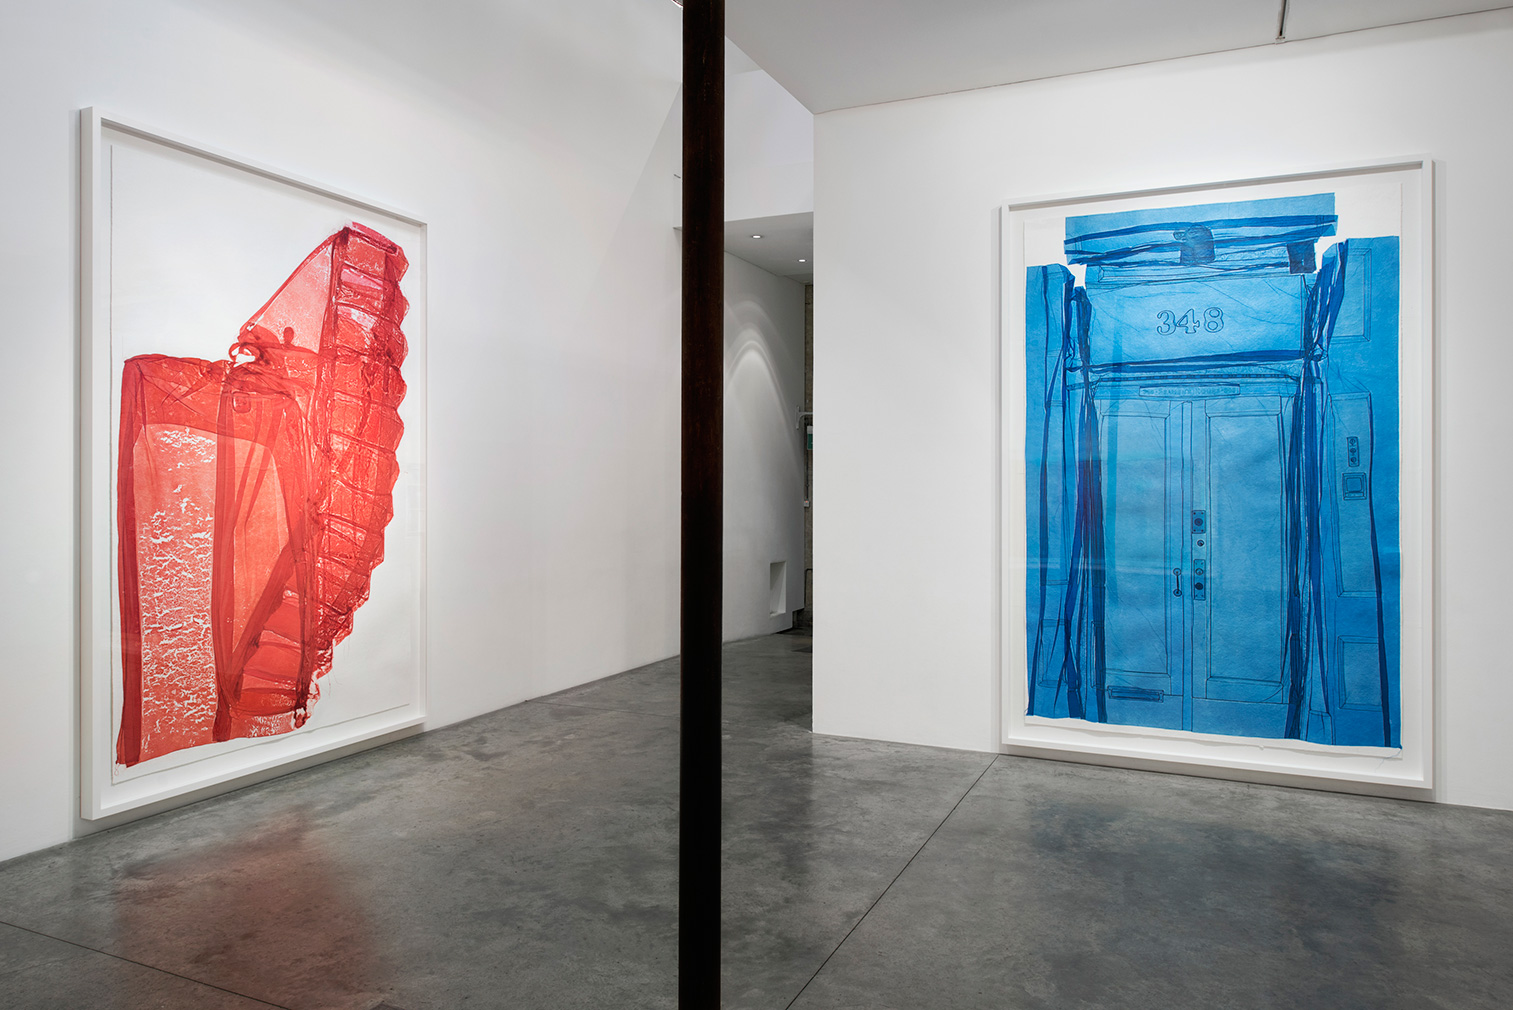 do ho suh Subject plural by paola morsiani, peter wollen, beat streuli, do-ho suh, grazia toderi, zhang huan, zhuang hui and a great selection of similar used, new and collectible books available now at abebookscom.